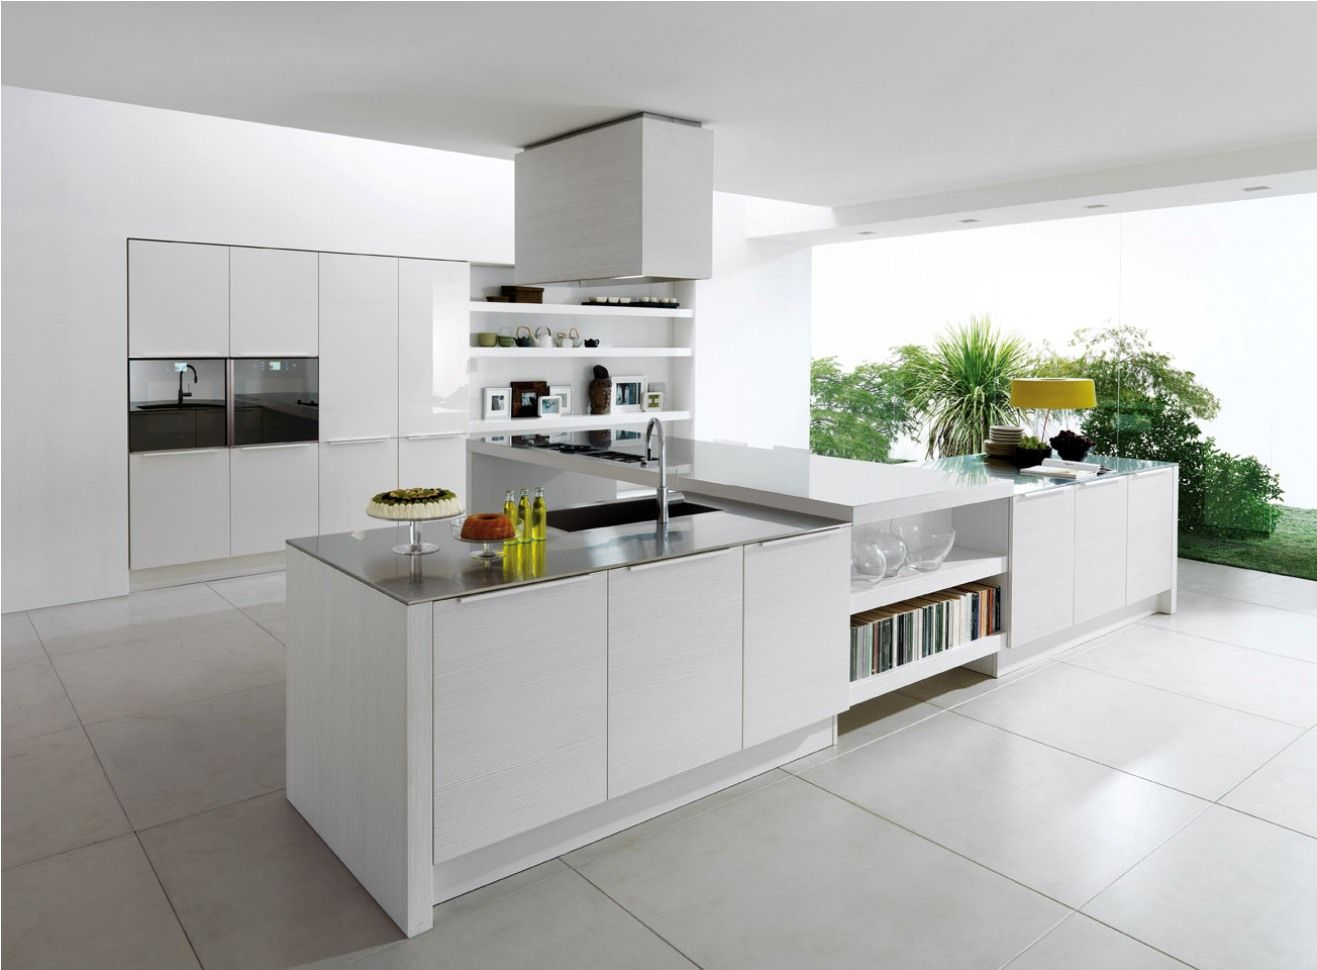 30 contemporary white kitchens ideas modern kitchen designs Kitchen designs with islands modern